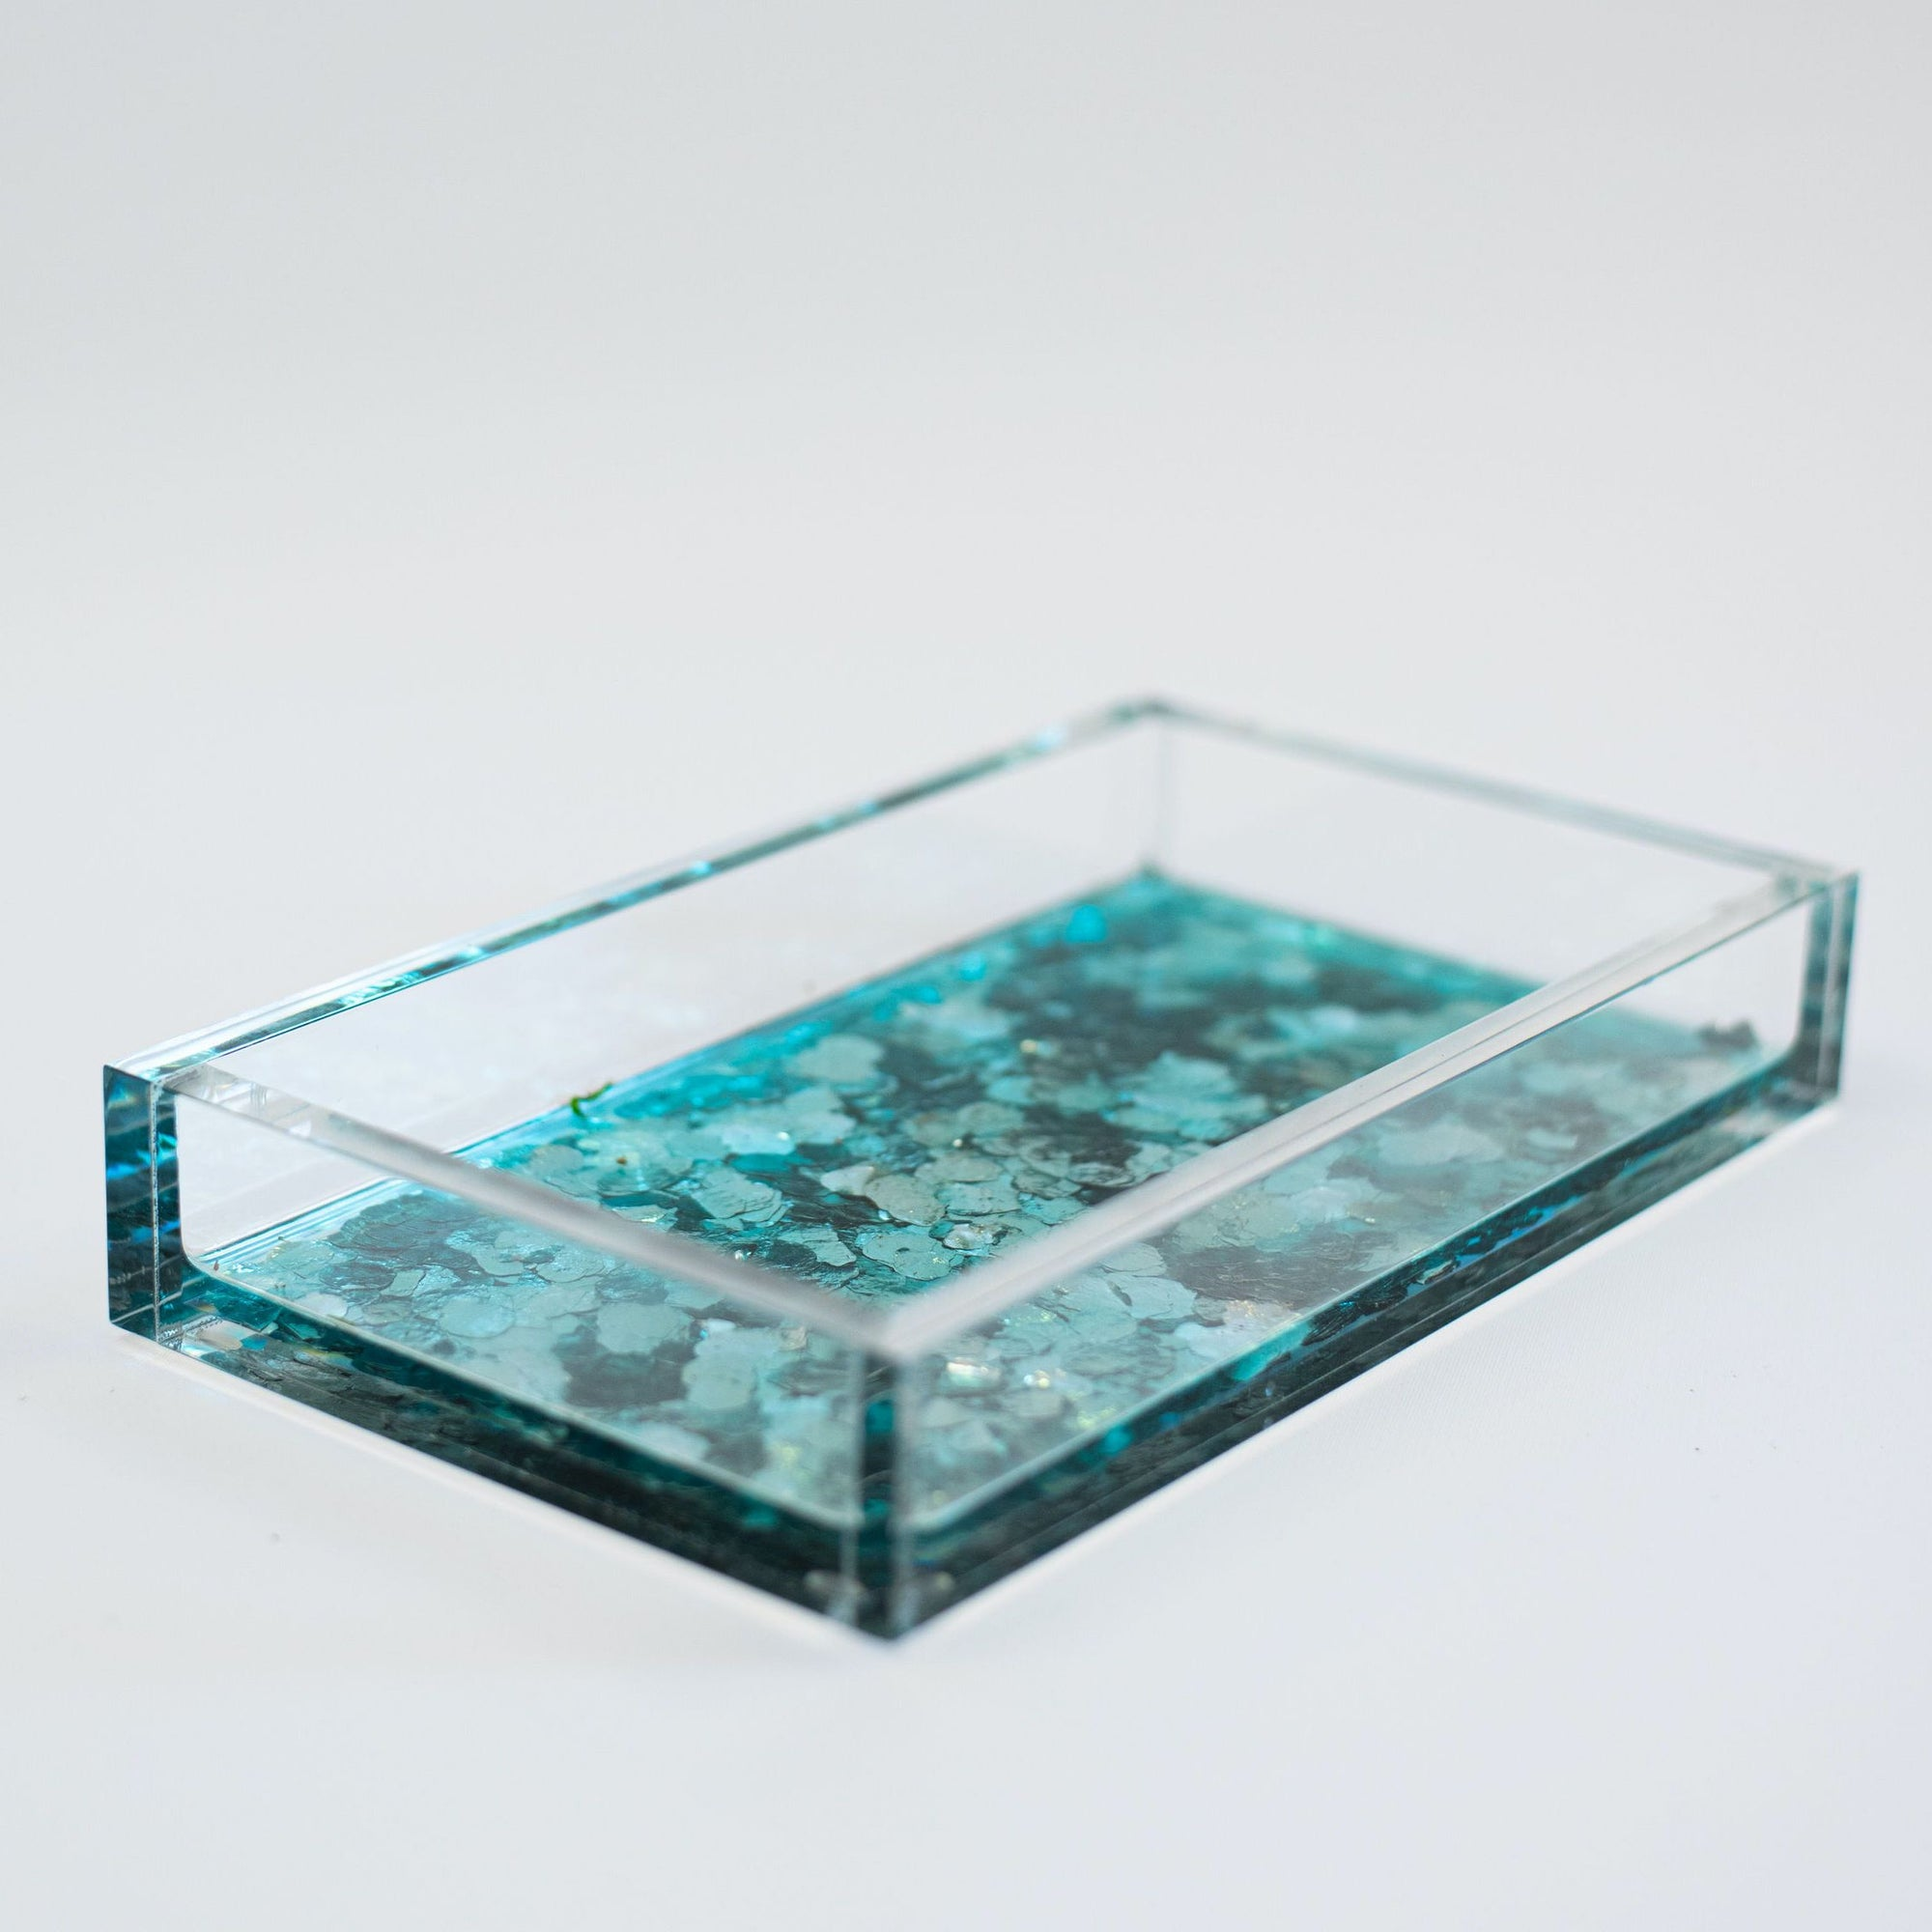 Acrylic + Metallic Tray tray Hugo Frings Metallics Teal